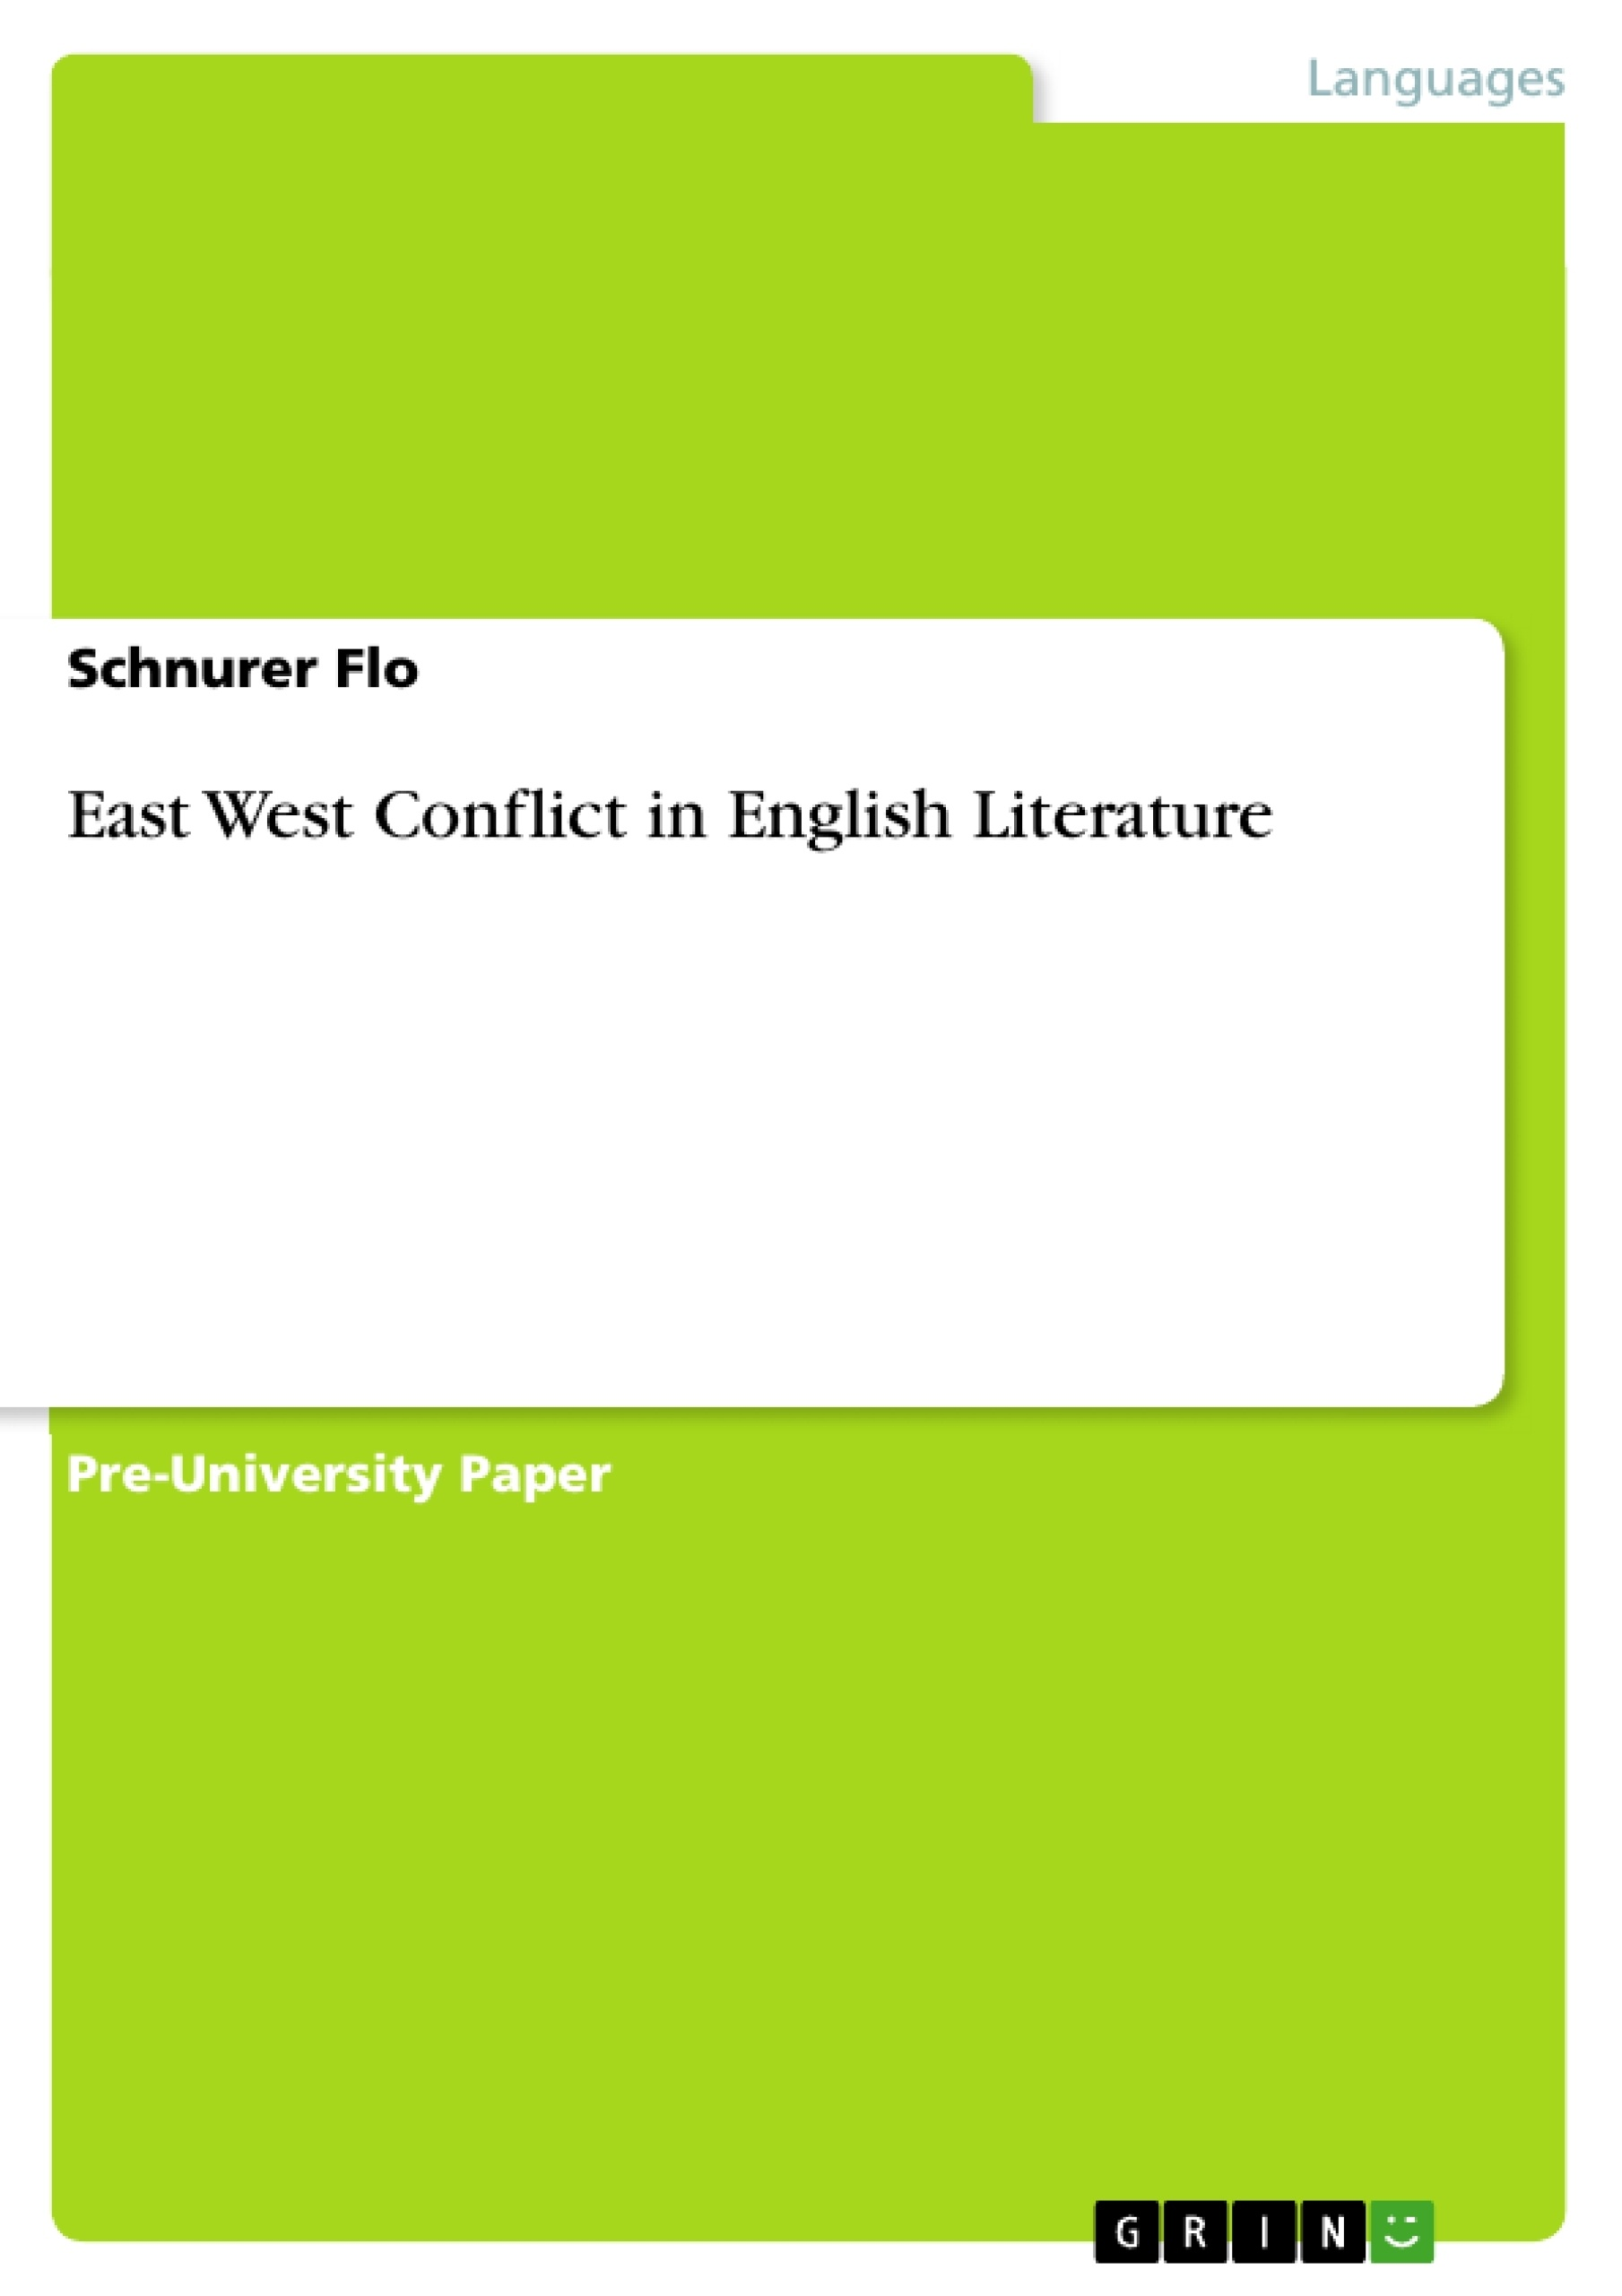 Title: East West Conflict in English Literature